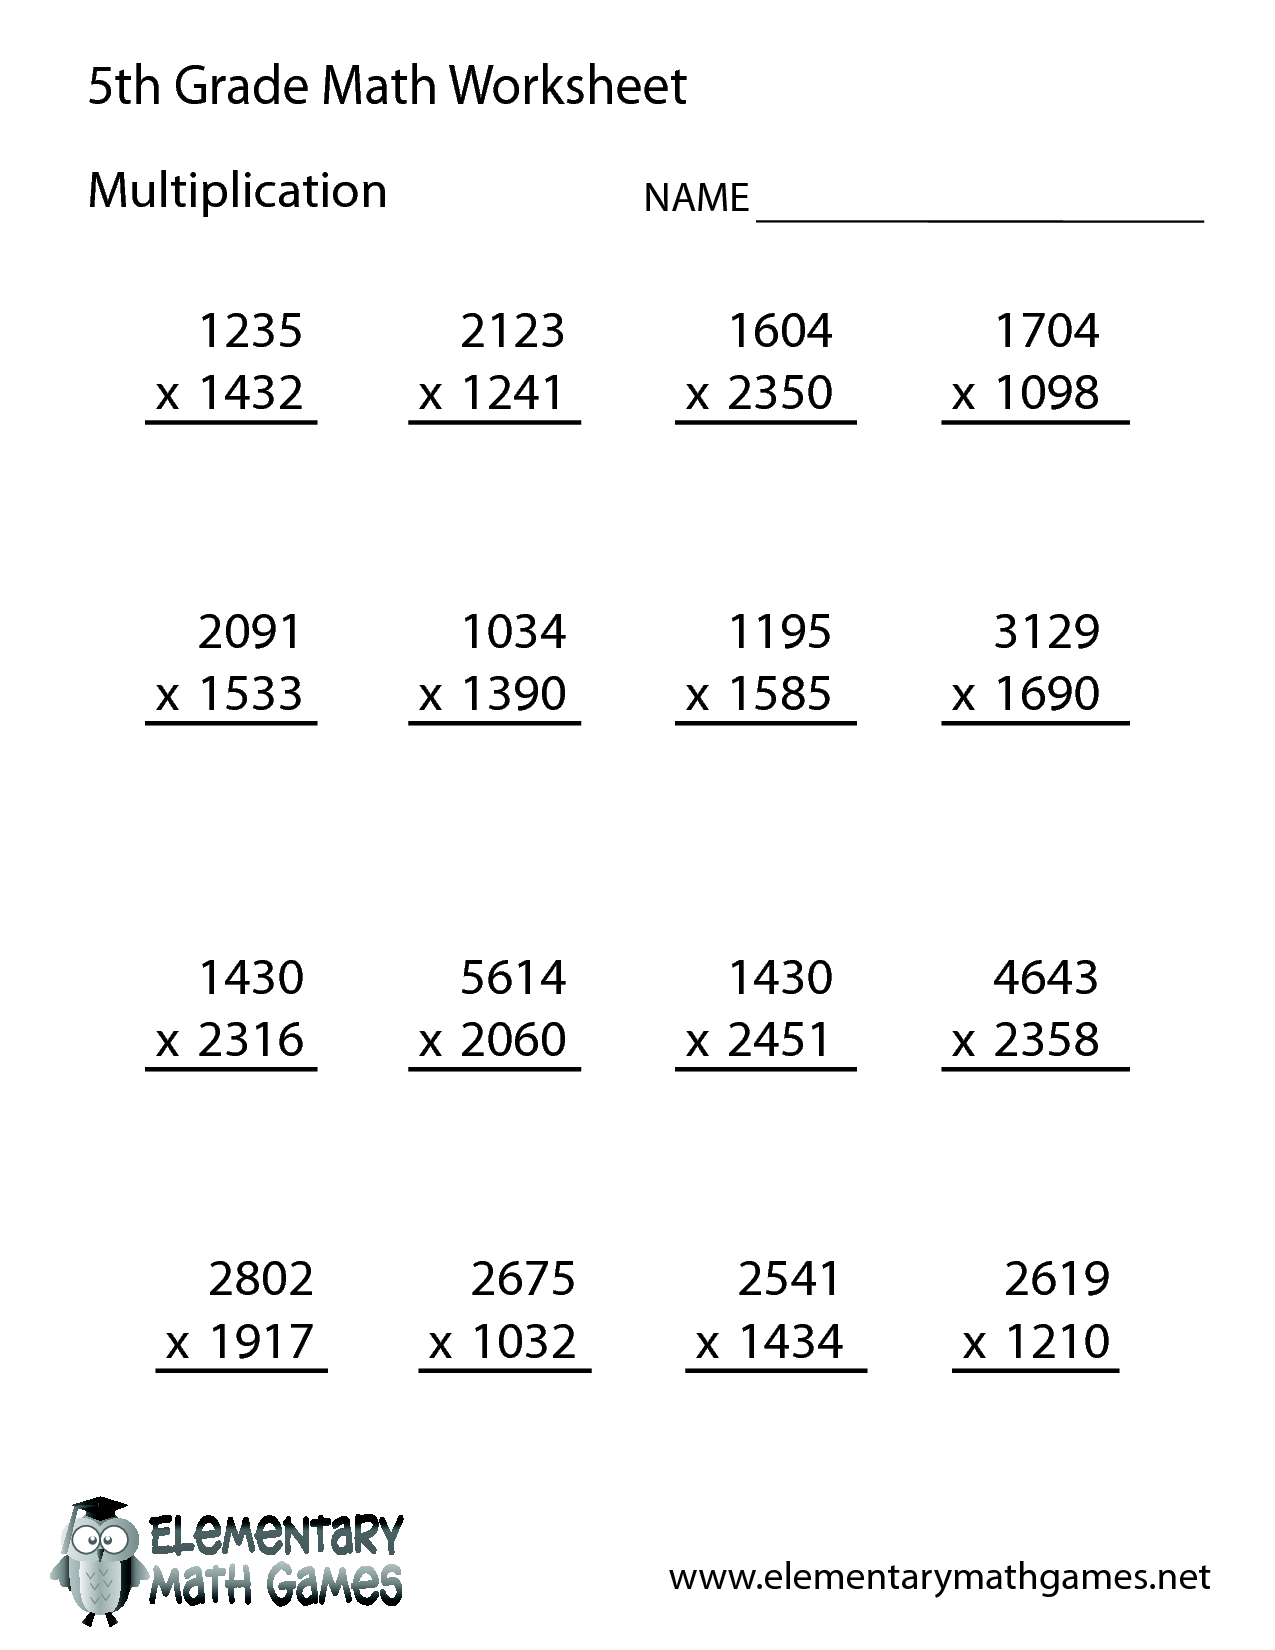 Free Math Worksheets for 5th Grade – Math Worksheets for 5th Grade Multiplication